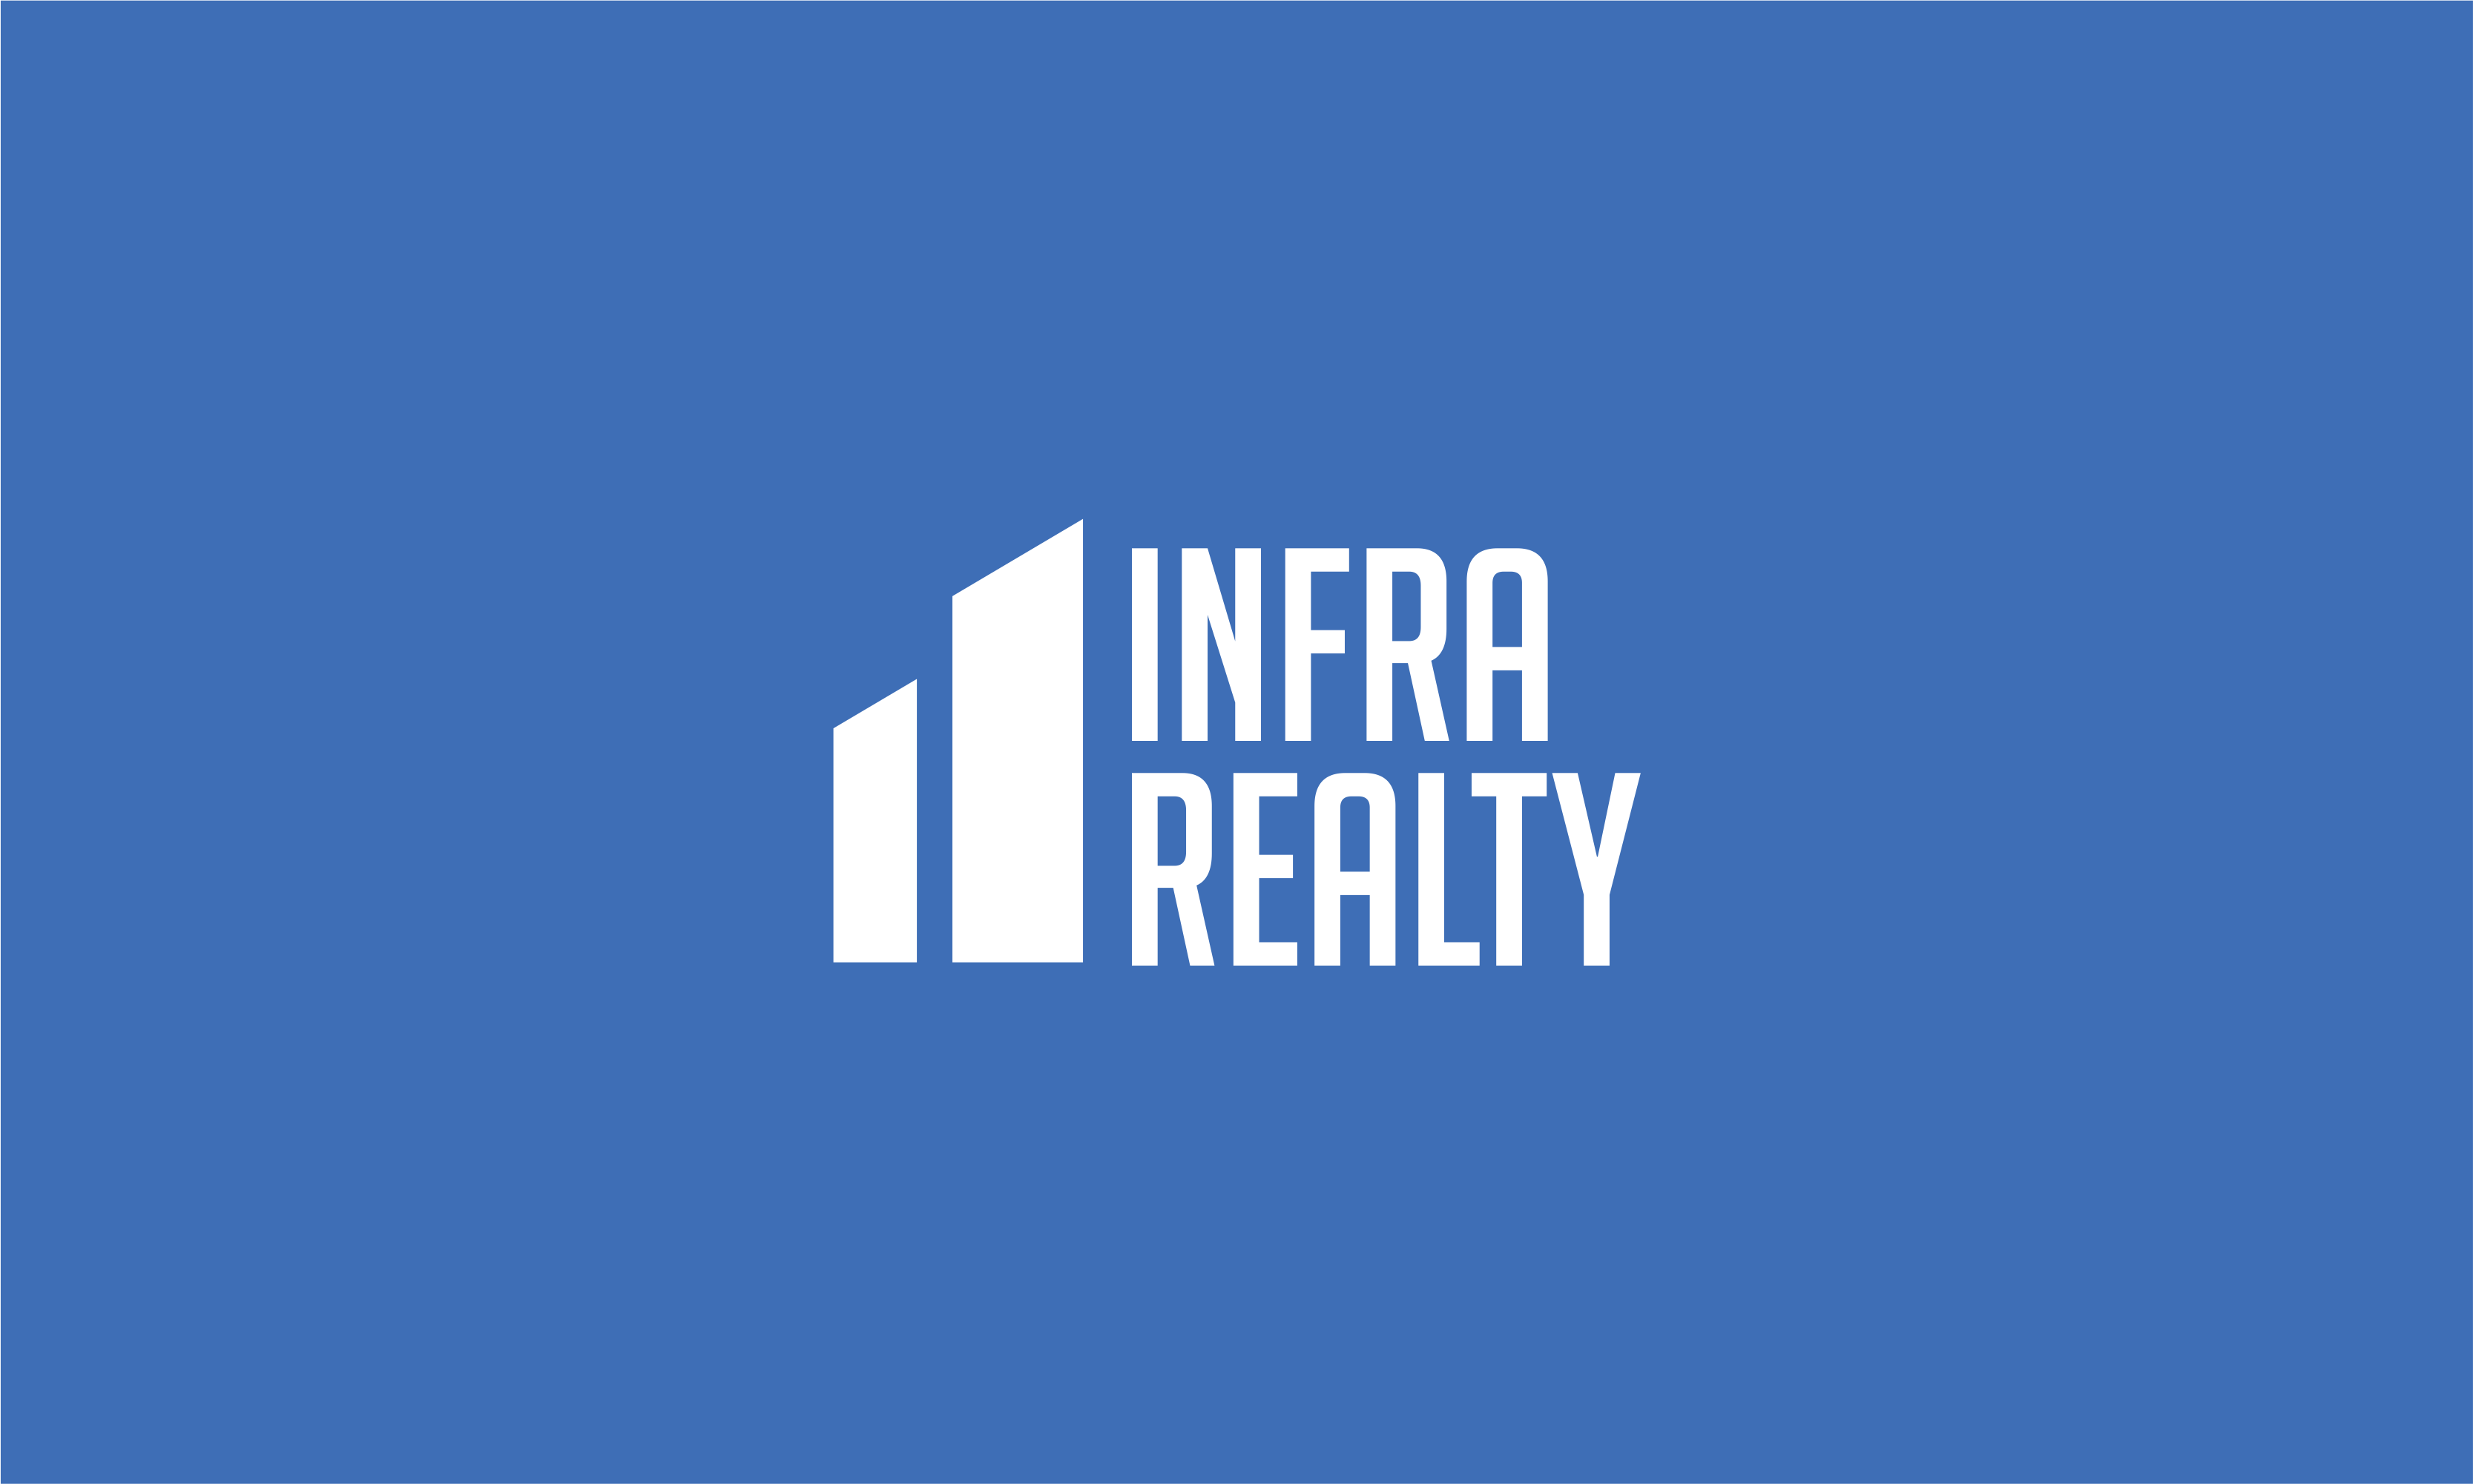 Infrarealty